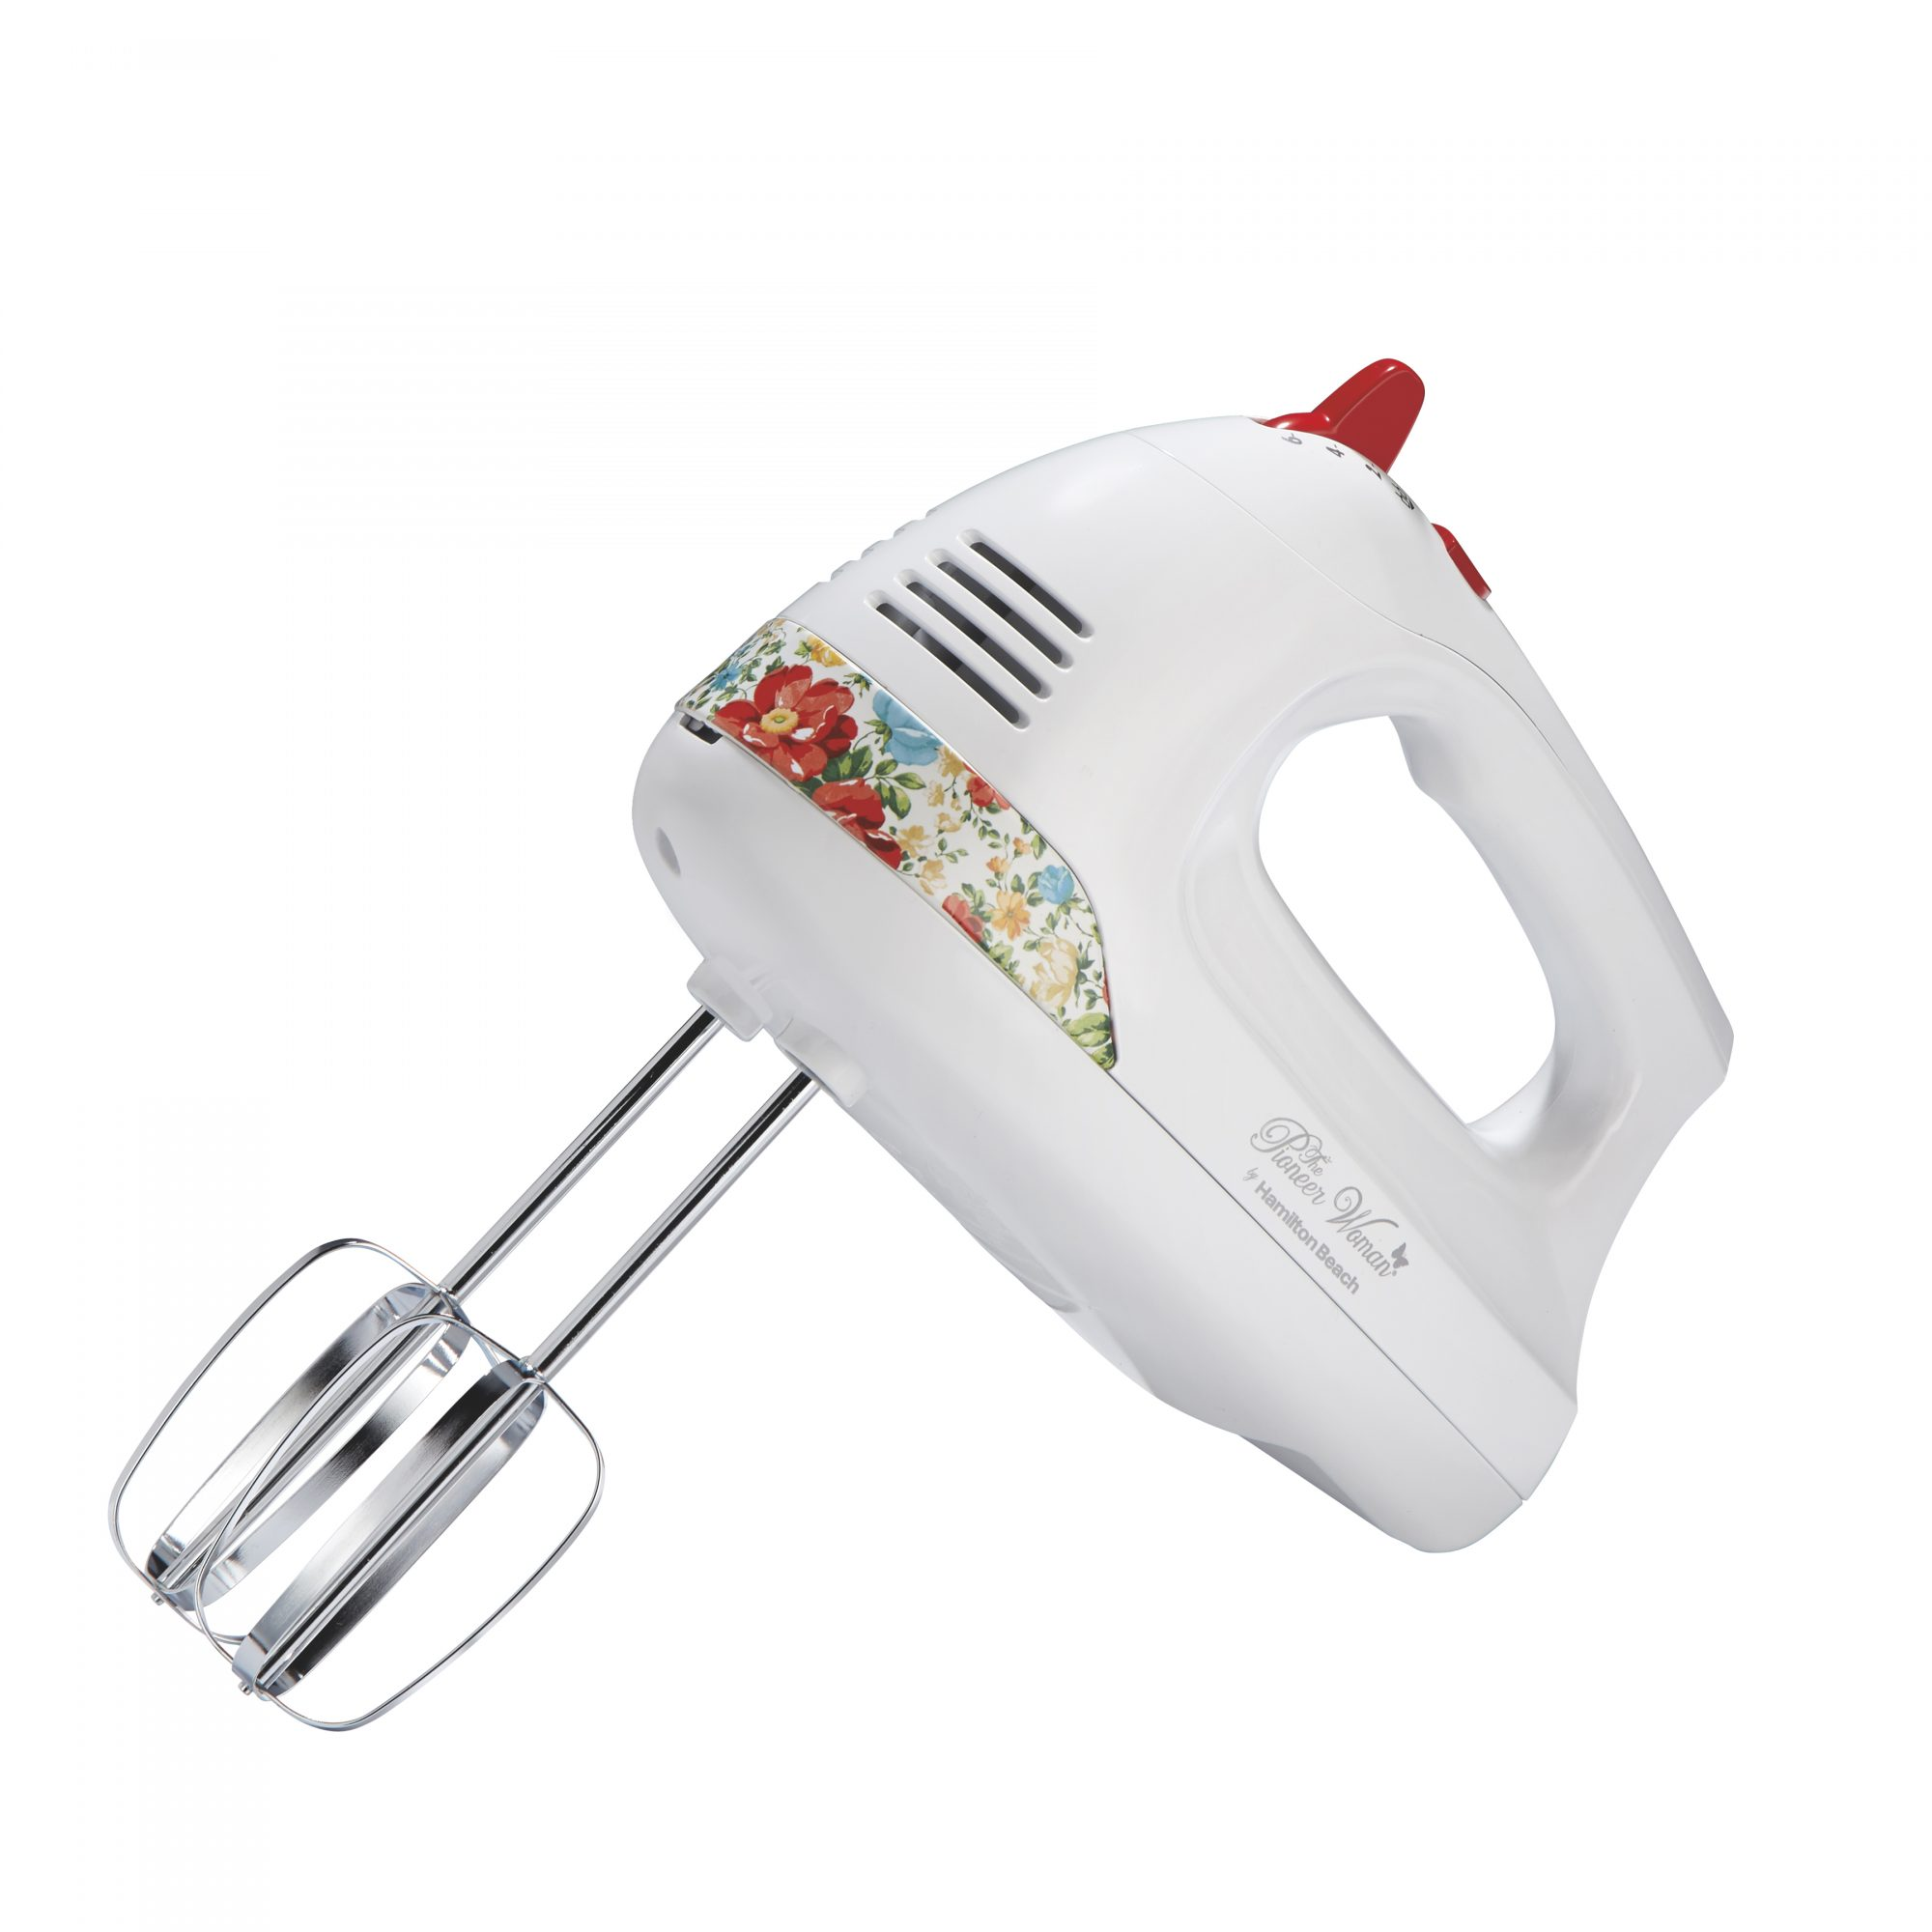 The Pioneer Woman 6-Speed Hand Mixer with Vintage Floral Design and Snap-On Case